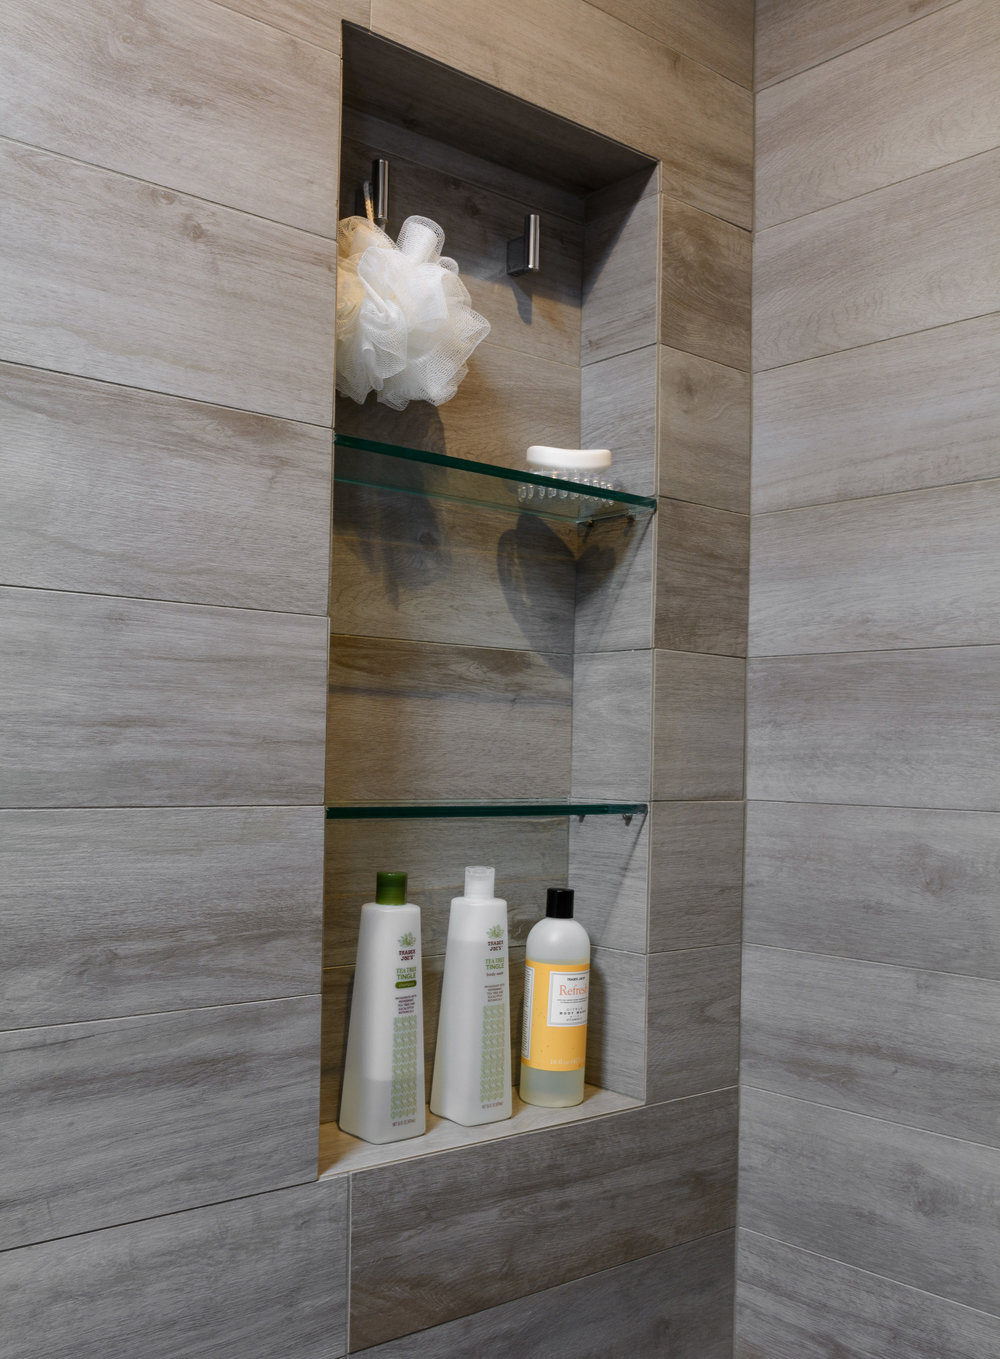 Tile niche in shower with glass shelves featuring weathered wood tile